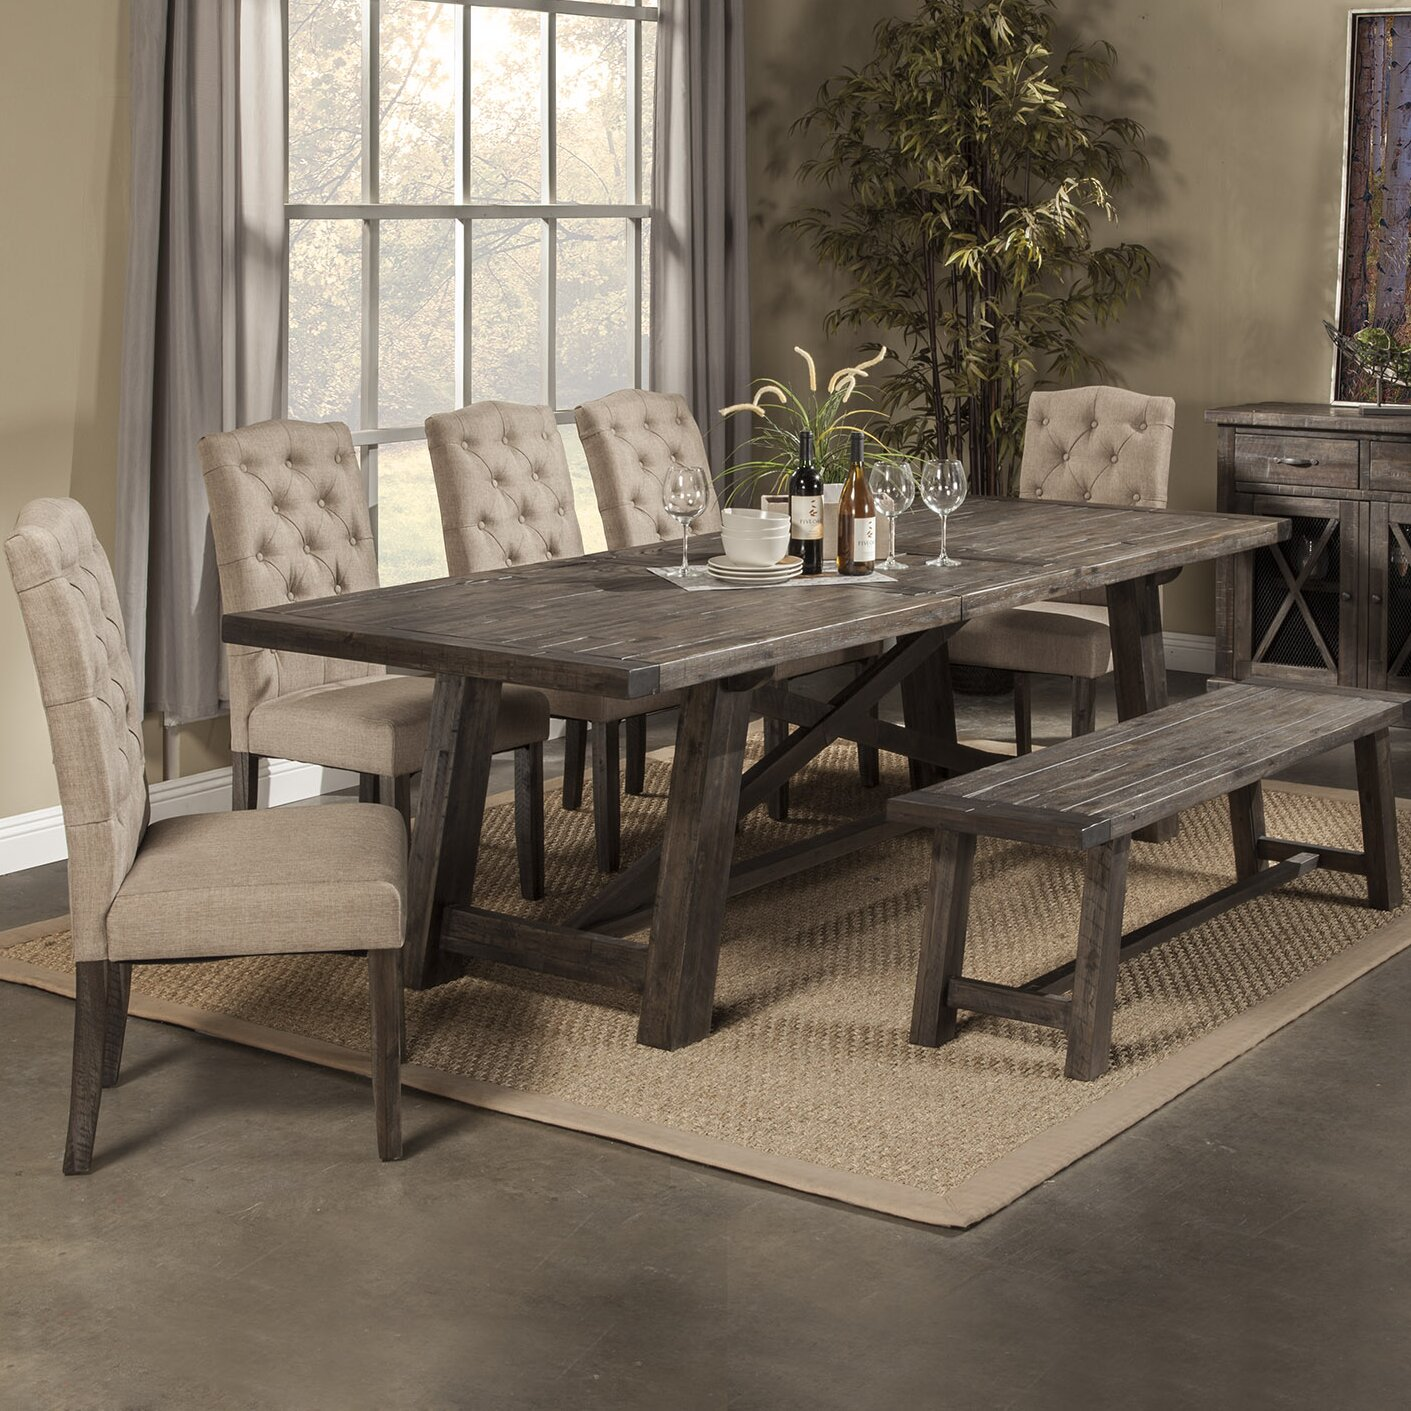 Loon peak todd creek 7 piece dining set reviews wayfair for Decor 7 piece lunch set